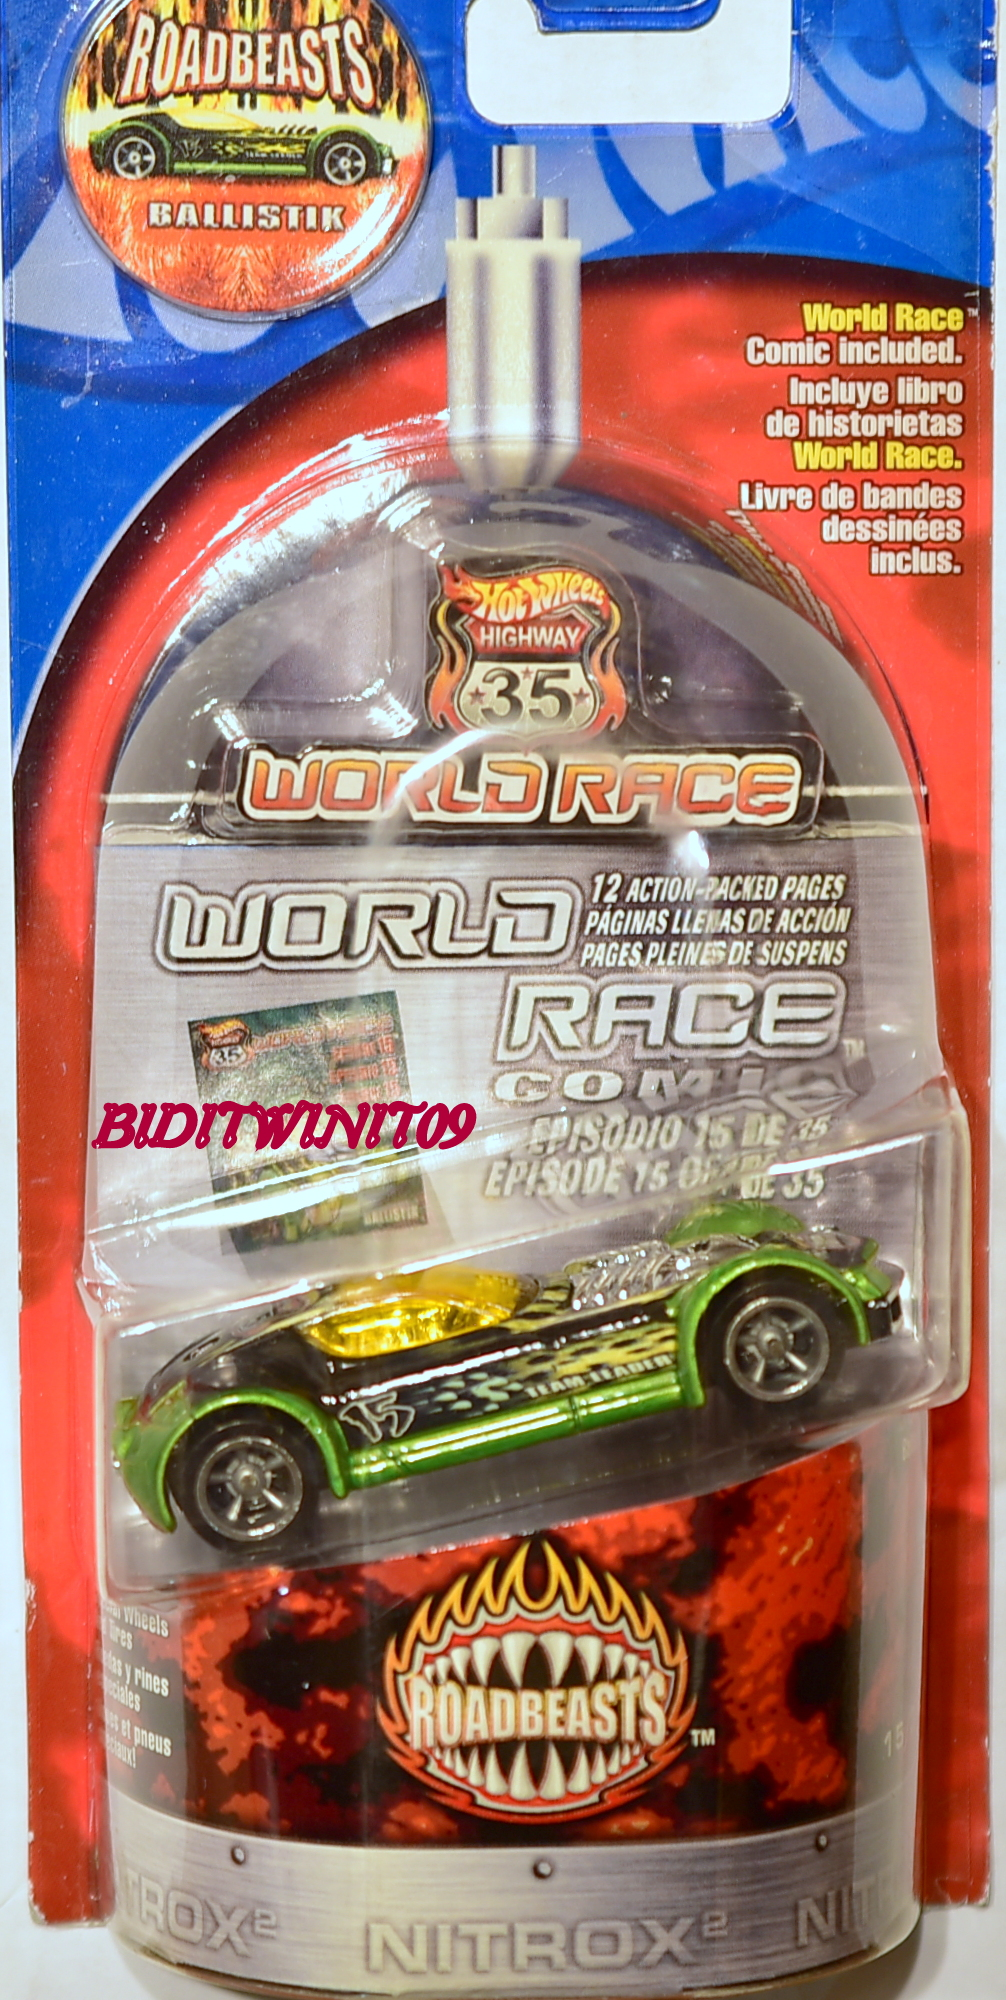 HOT WHEELS HIGHWAY 35 WORLDRACE ROADBEASTS BALLISTIK #15/35